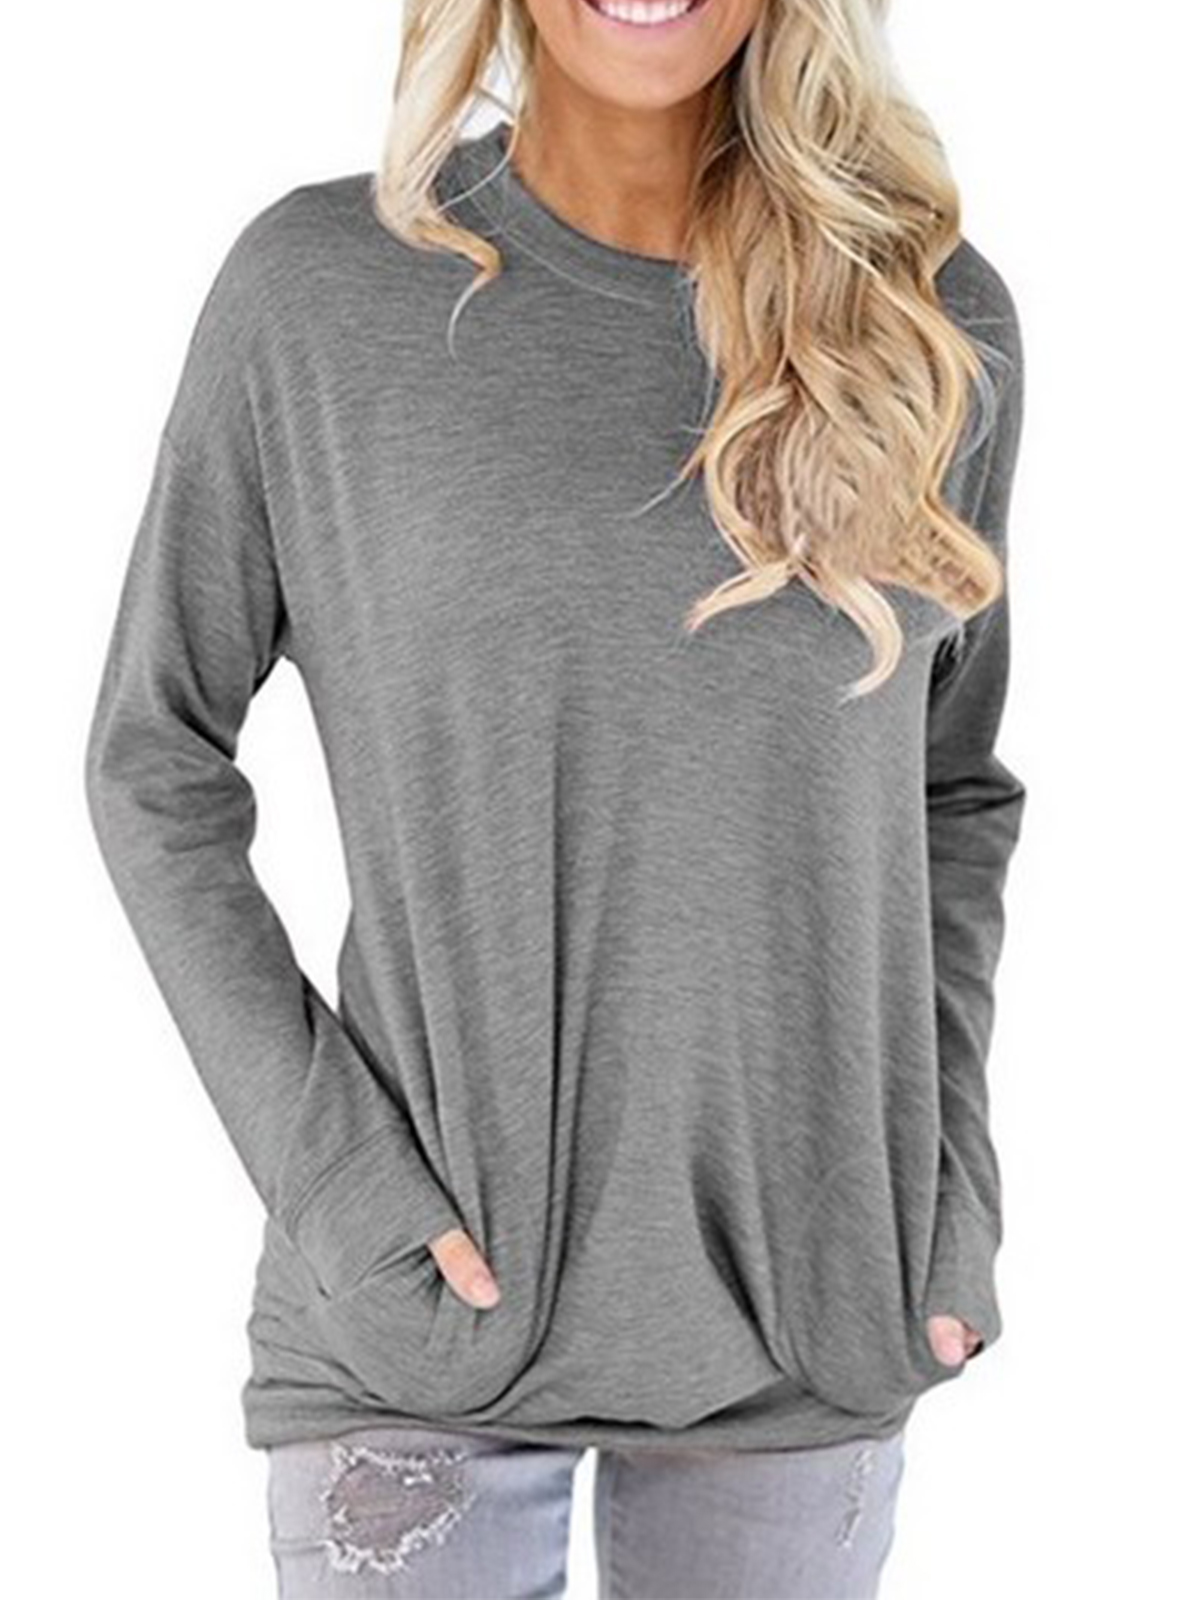 Eoeth Women Casual Long Section Sweatshirt Solid Loose Pullover Tops Blouse Shirts T-Shirts with Pockets Tracksuits